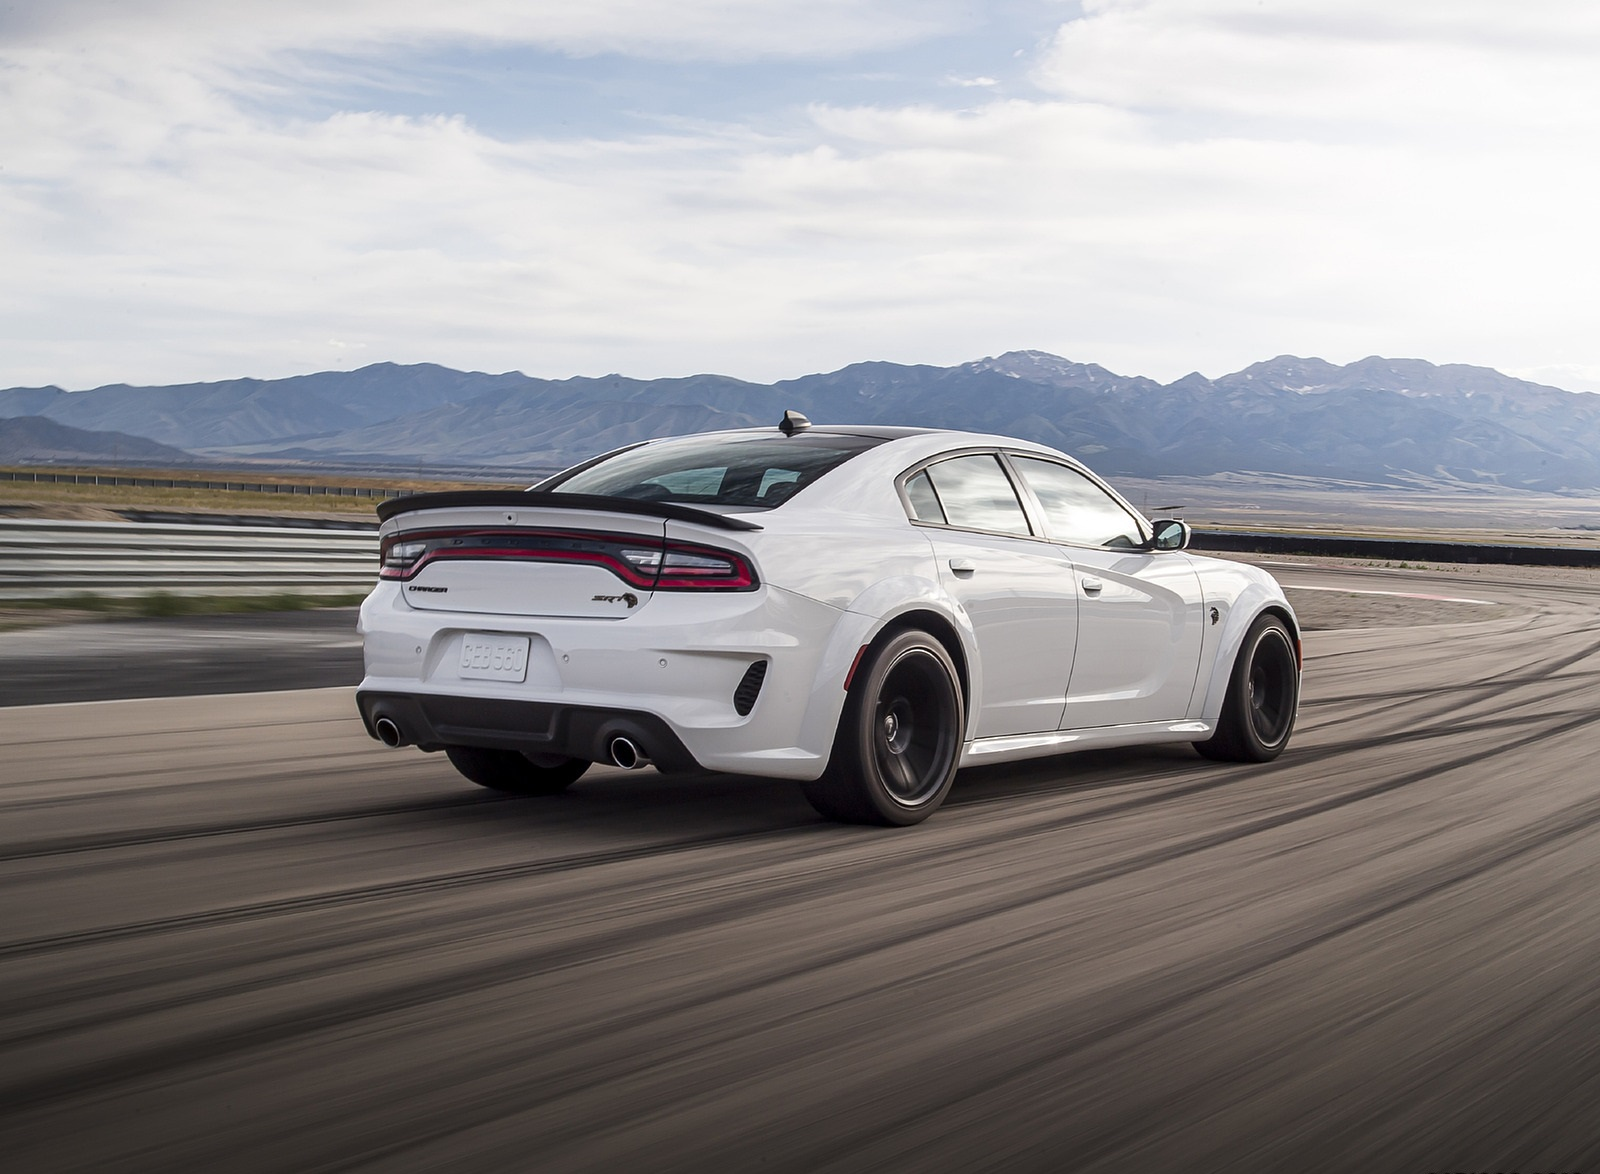 2021 Dodge Charger SRT Hellcat Redeye Rear Three-Quarter Wallpapers (6)